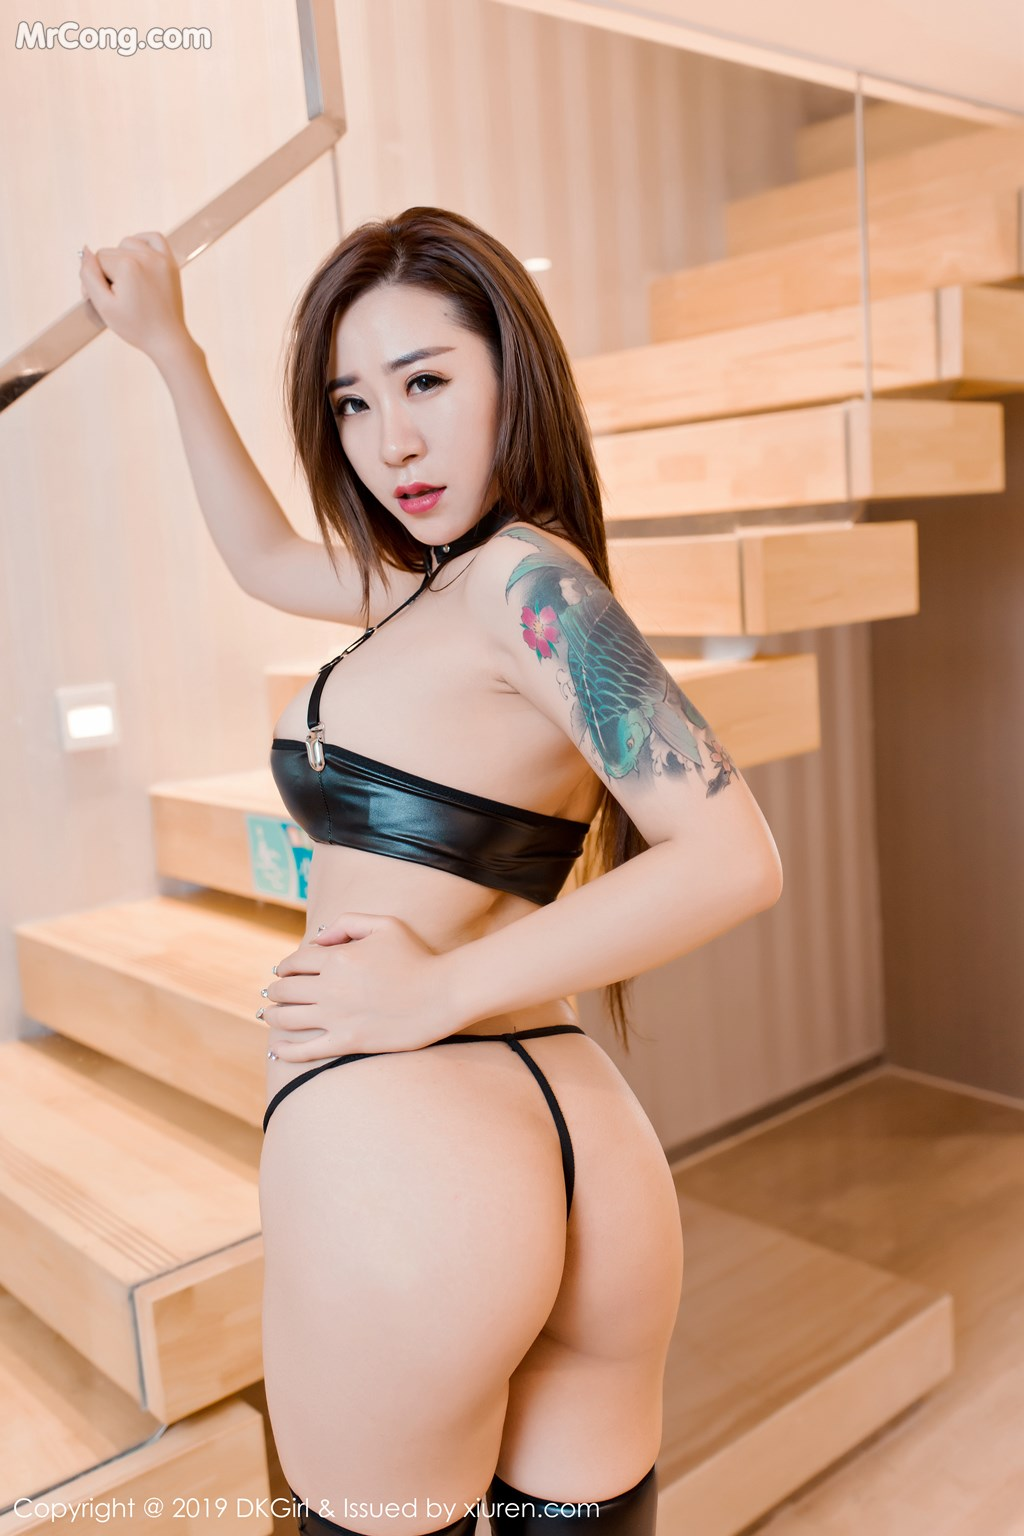 Image DKGirl-Vol.109-Cier-MrCong.com-020 in post DKGirl Vol.109: 雪儿Cier (49 ảnh)